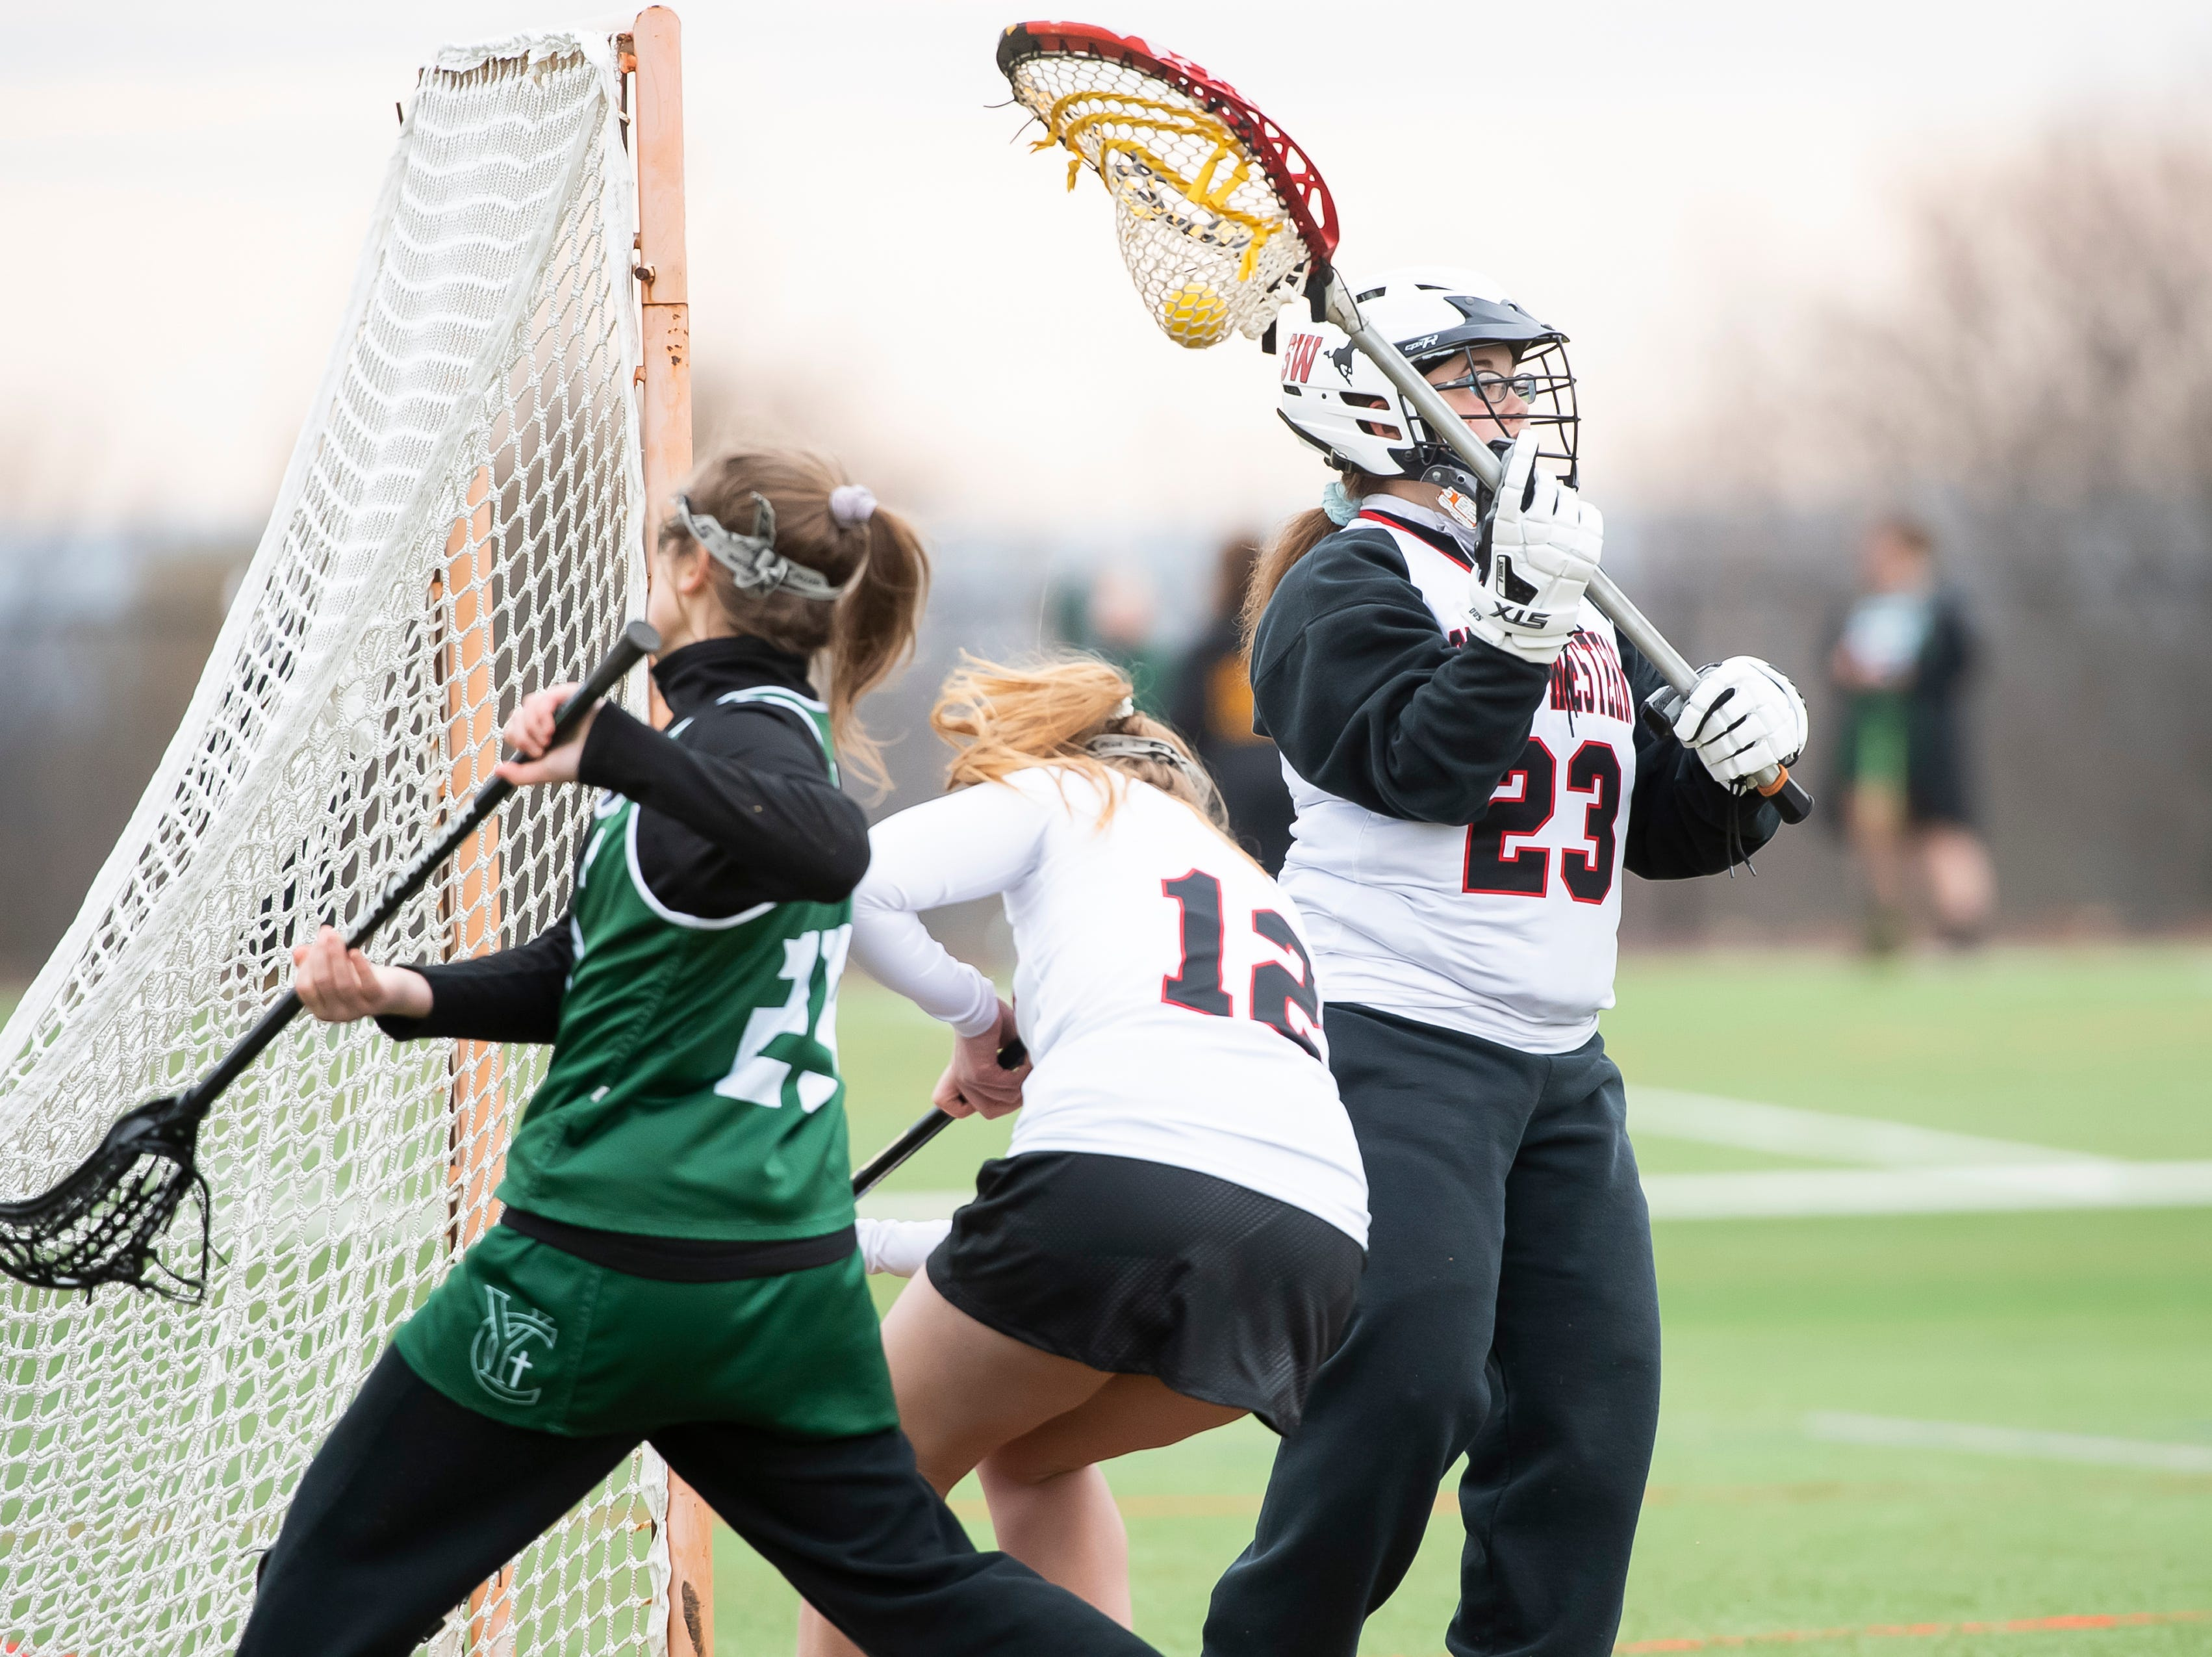 South Western goalie Morgan Melucci makes a save during a YAIAA lacrosse game against York Catholic in Hanover on Tuesday, April 2, 2019. Melucci had eight saves as York Catholic won 19-7.